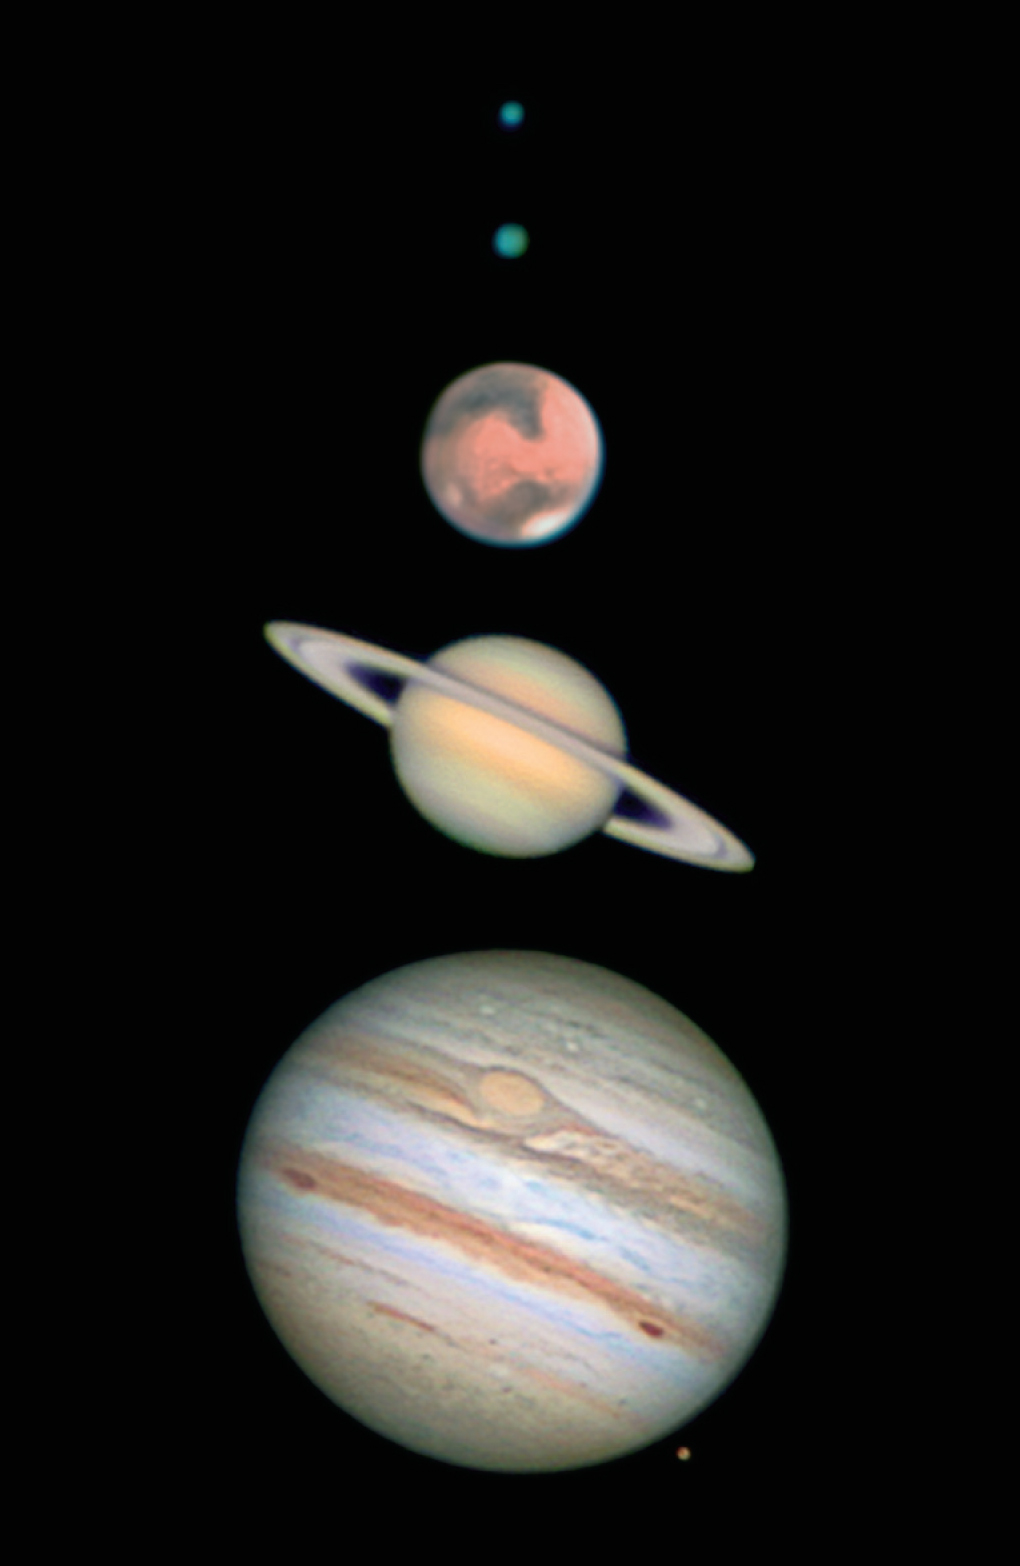 Solar system planets in a DSLR using planetary imaging techniques.